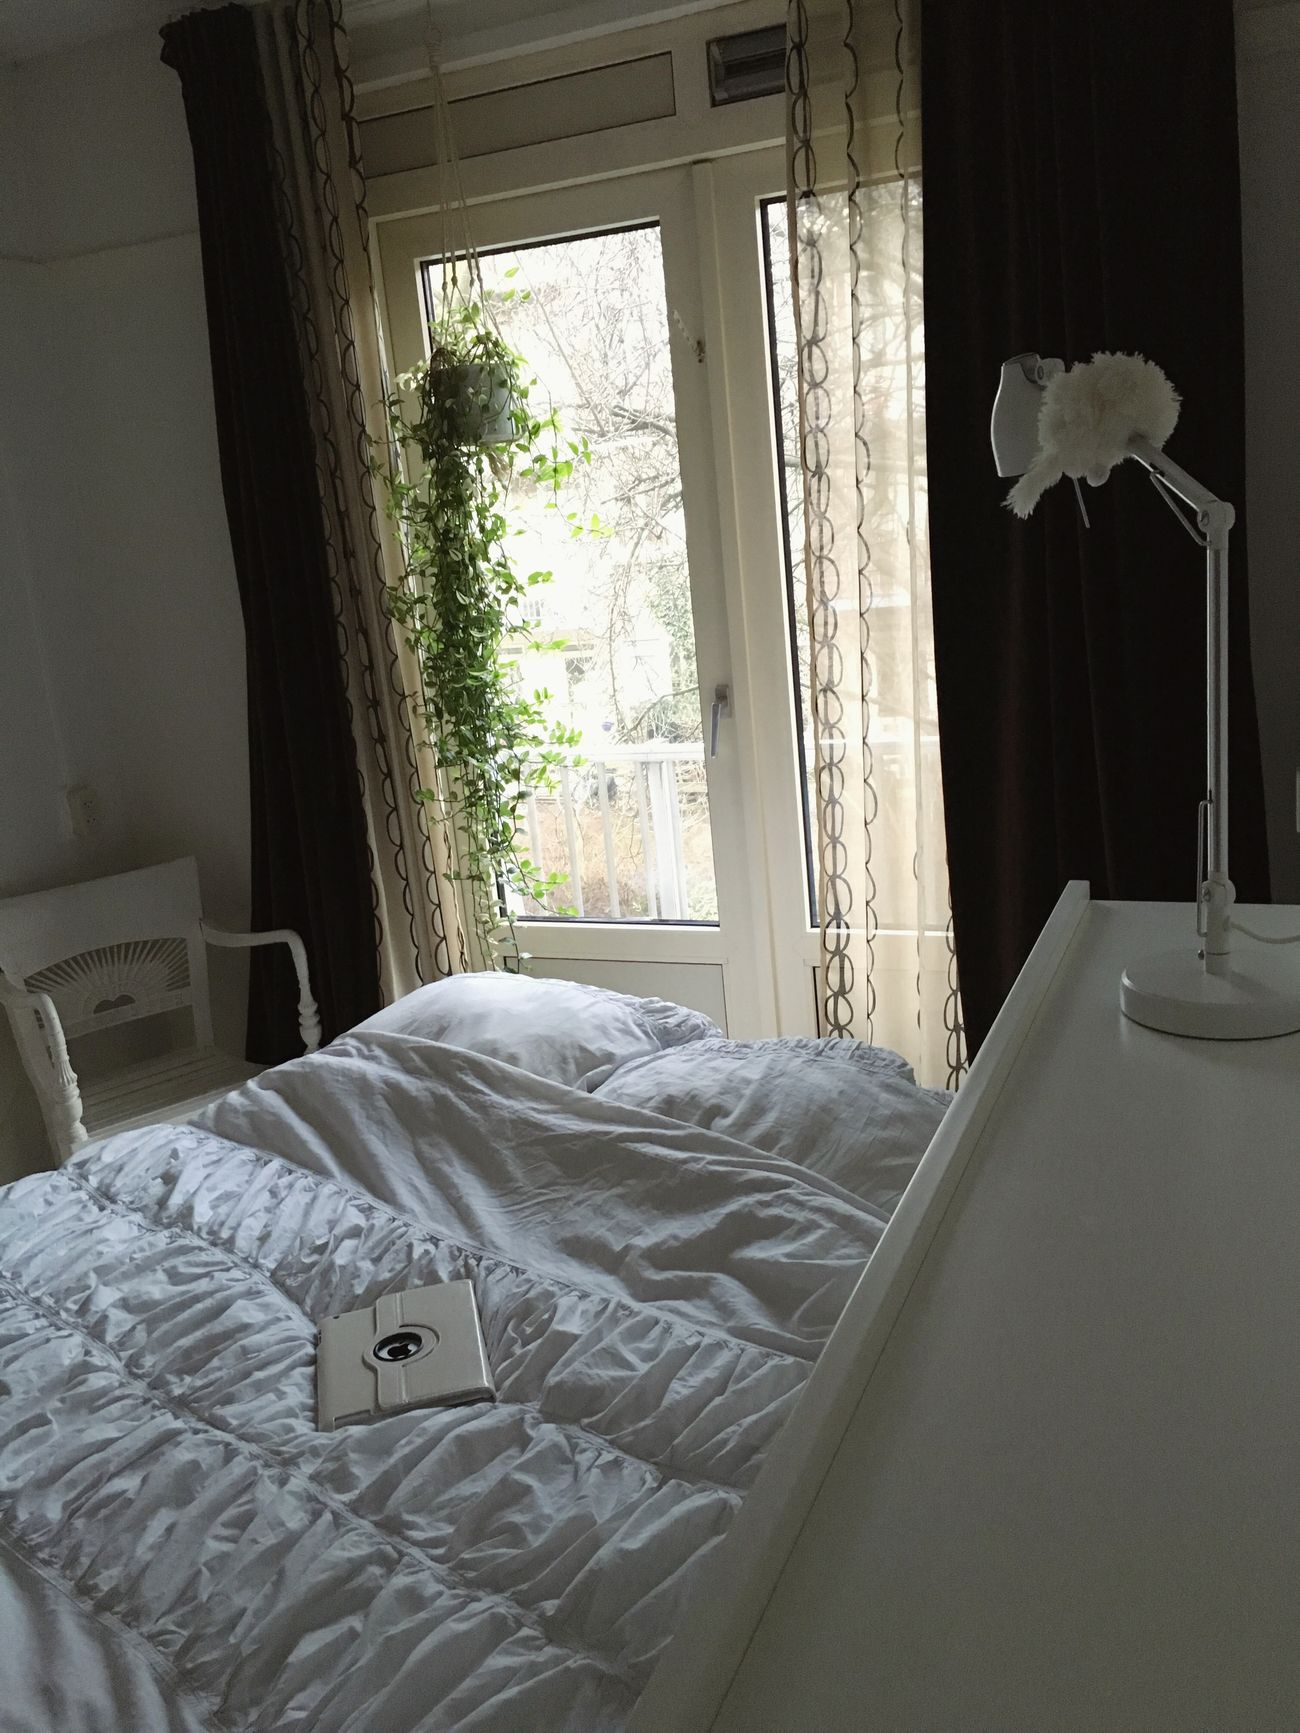 Hanging Plants White Interior Baroque Style Ipad Longest Hanging Plant Green Leaves. White Bedding White Walls